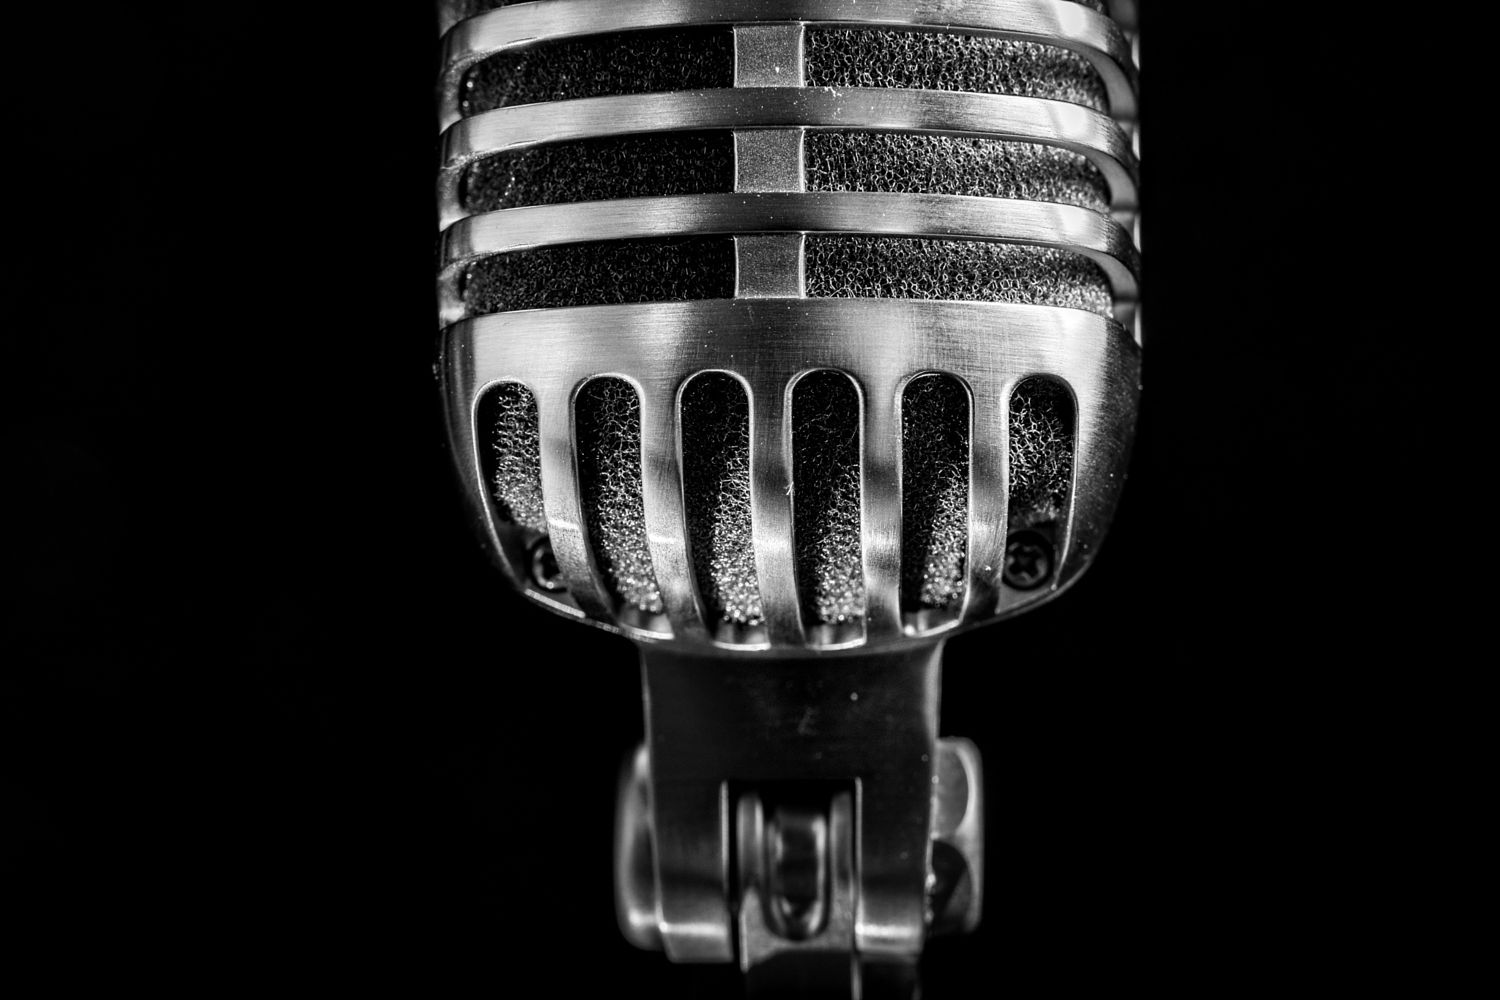 Vintage microphone on black background